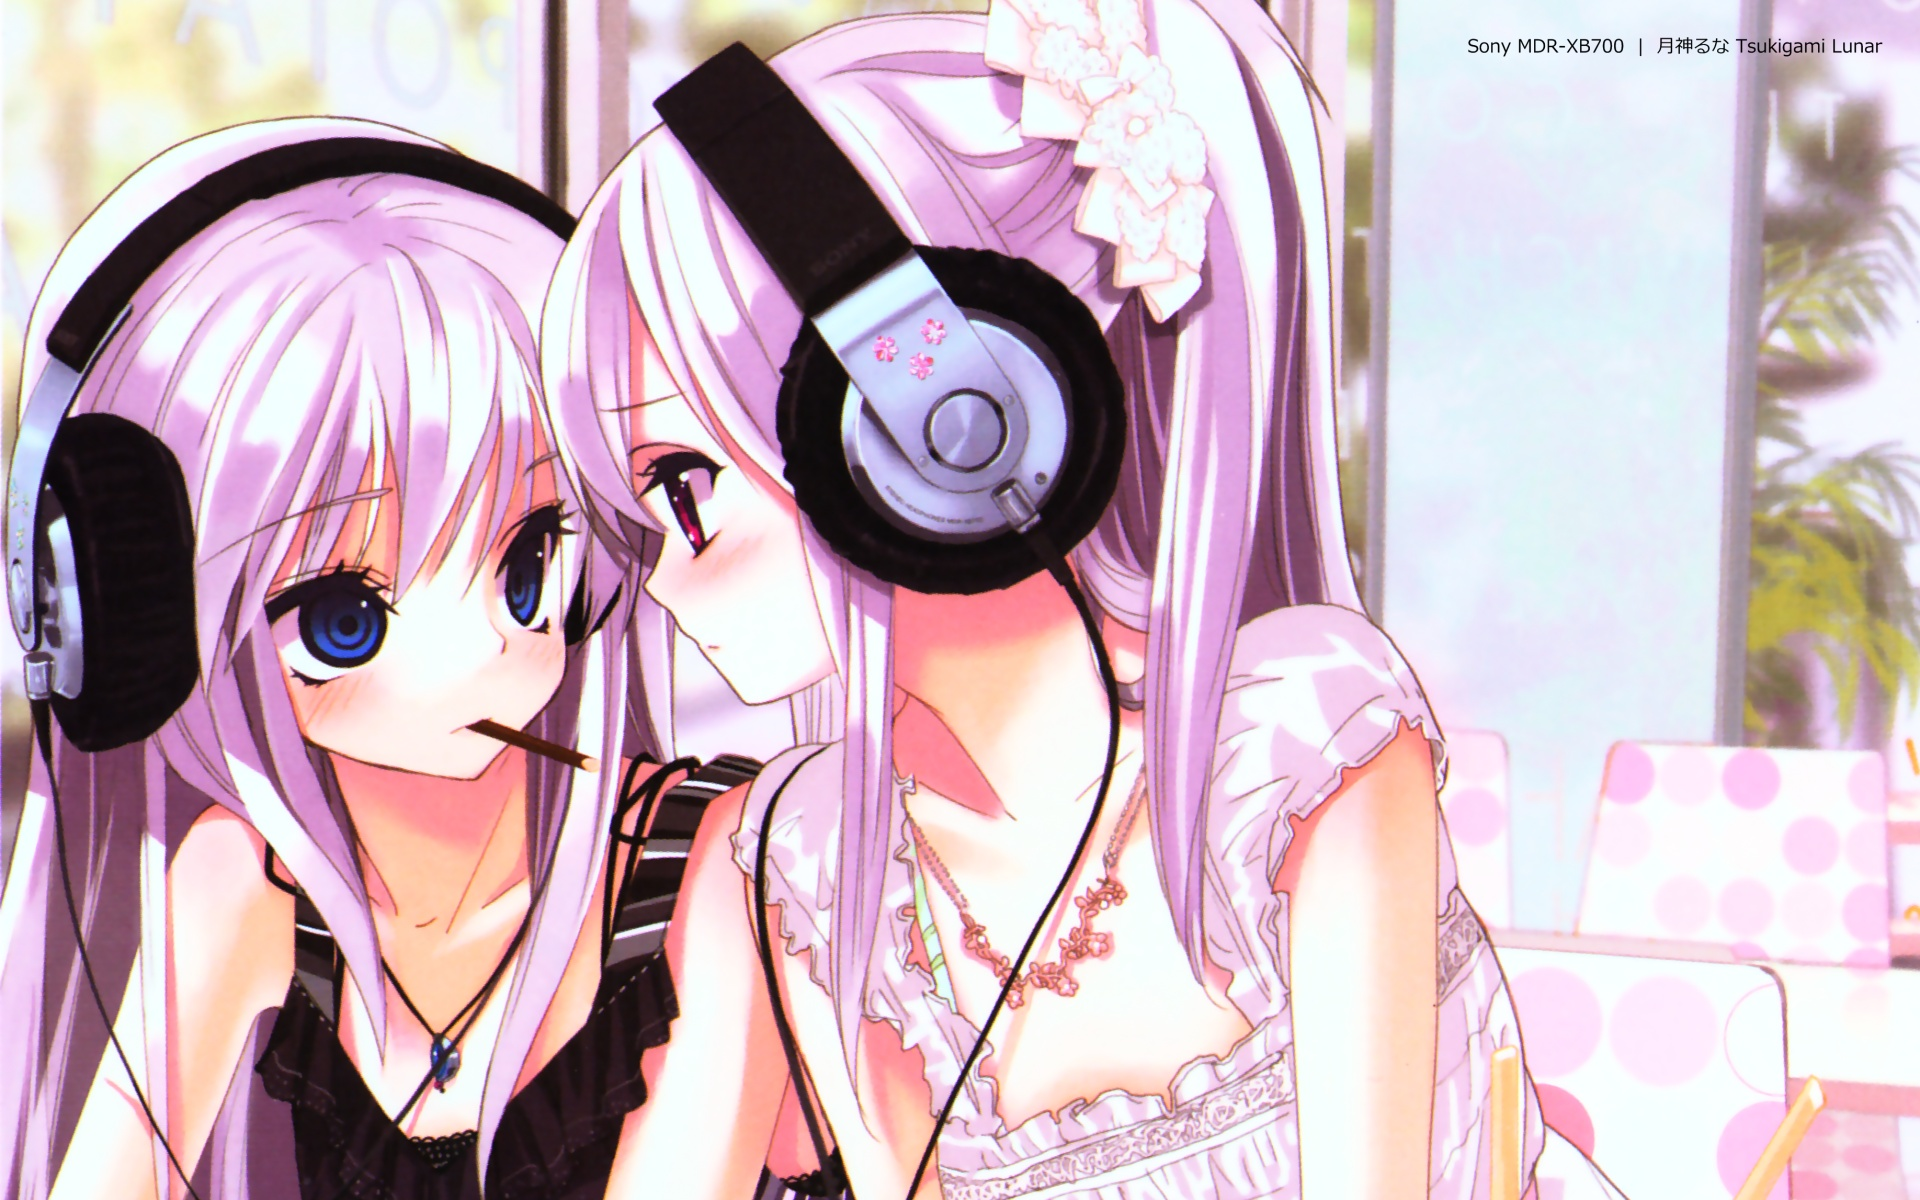 Anime - Headphones  - Pocky - Anime Wallpaper